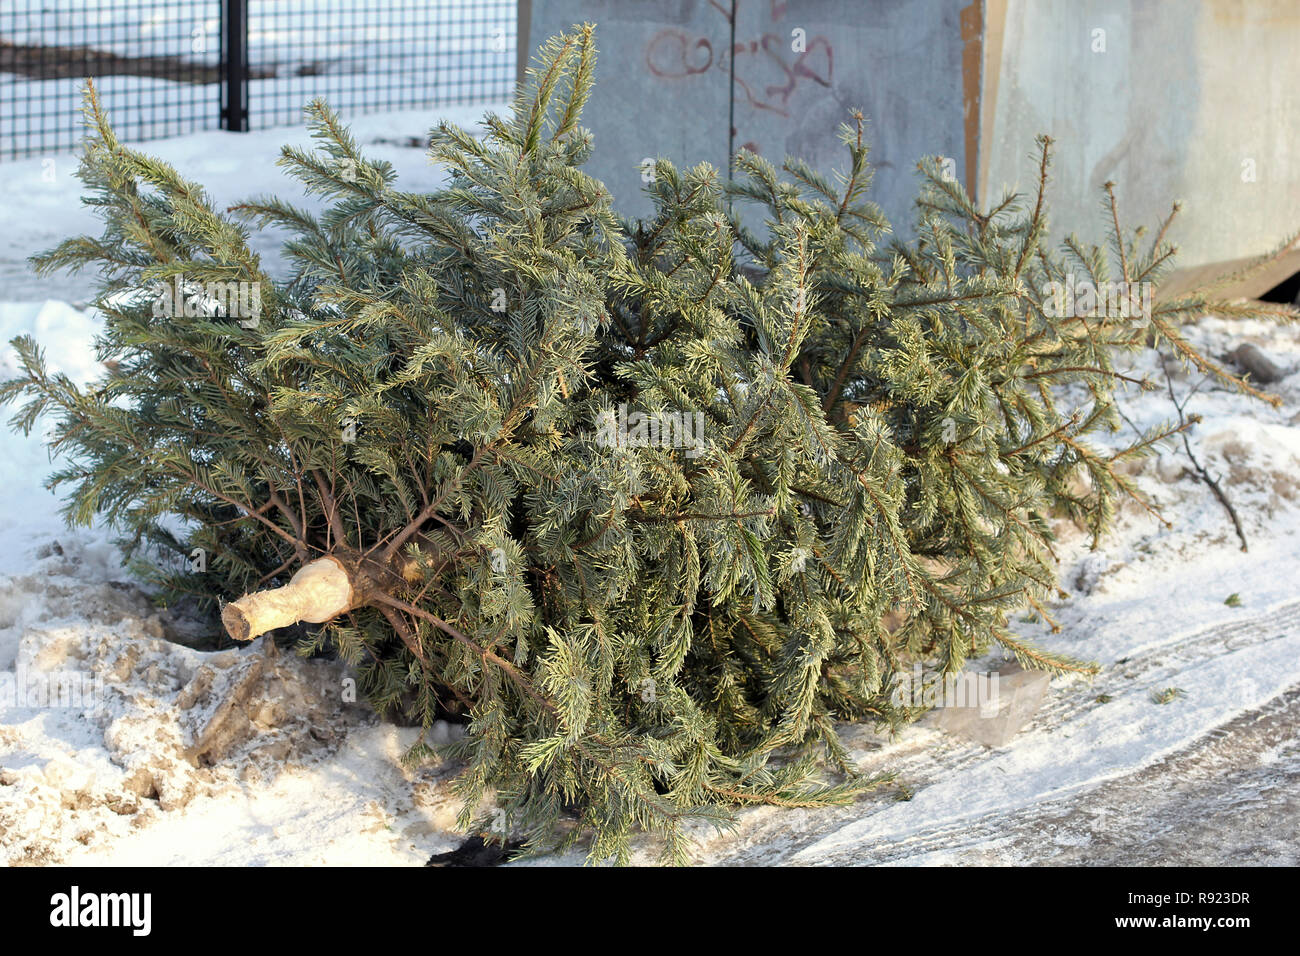 A Christmas tree was discarded at a bottle bank - Stock Image